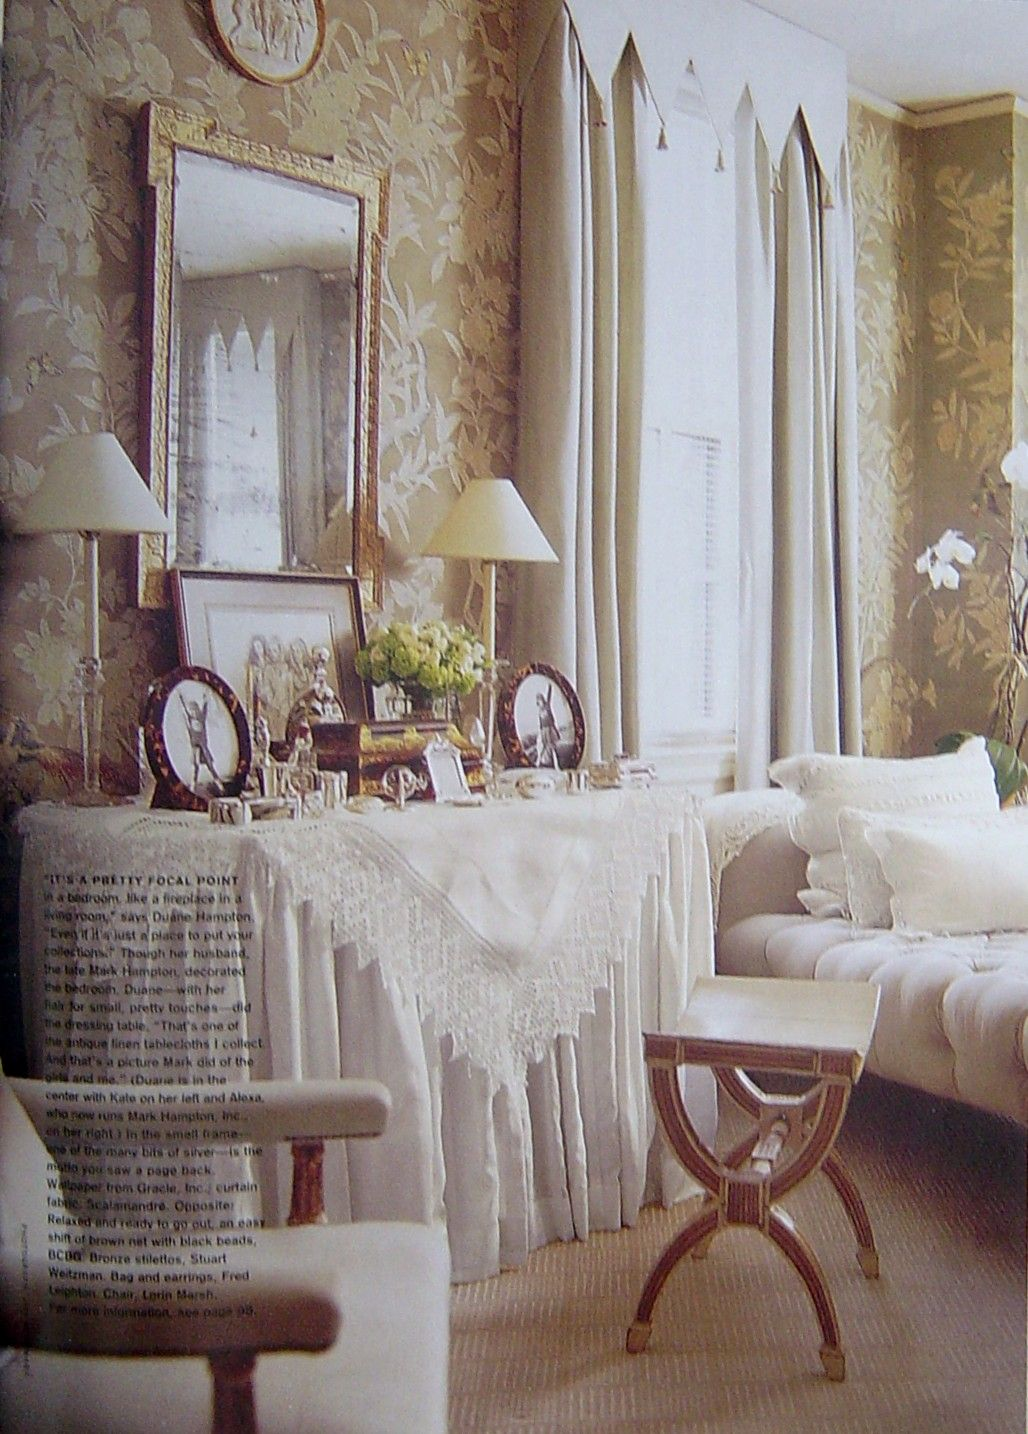 Miss kris studio vanity affair vanity pinterest studios and victoria august 2001 custom gracie handpainted wallpaper for the late mark hampton love the valance and dressing table geotapseo Image collections